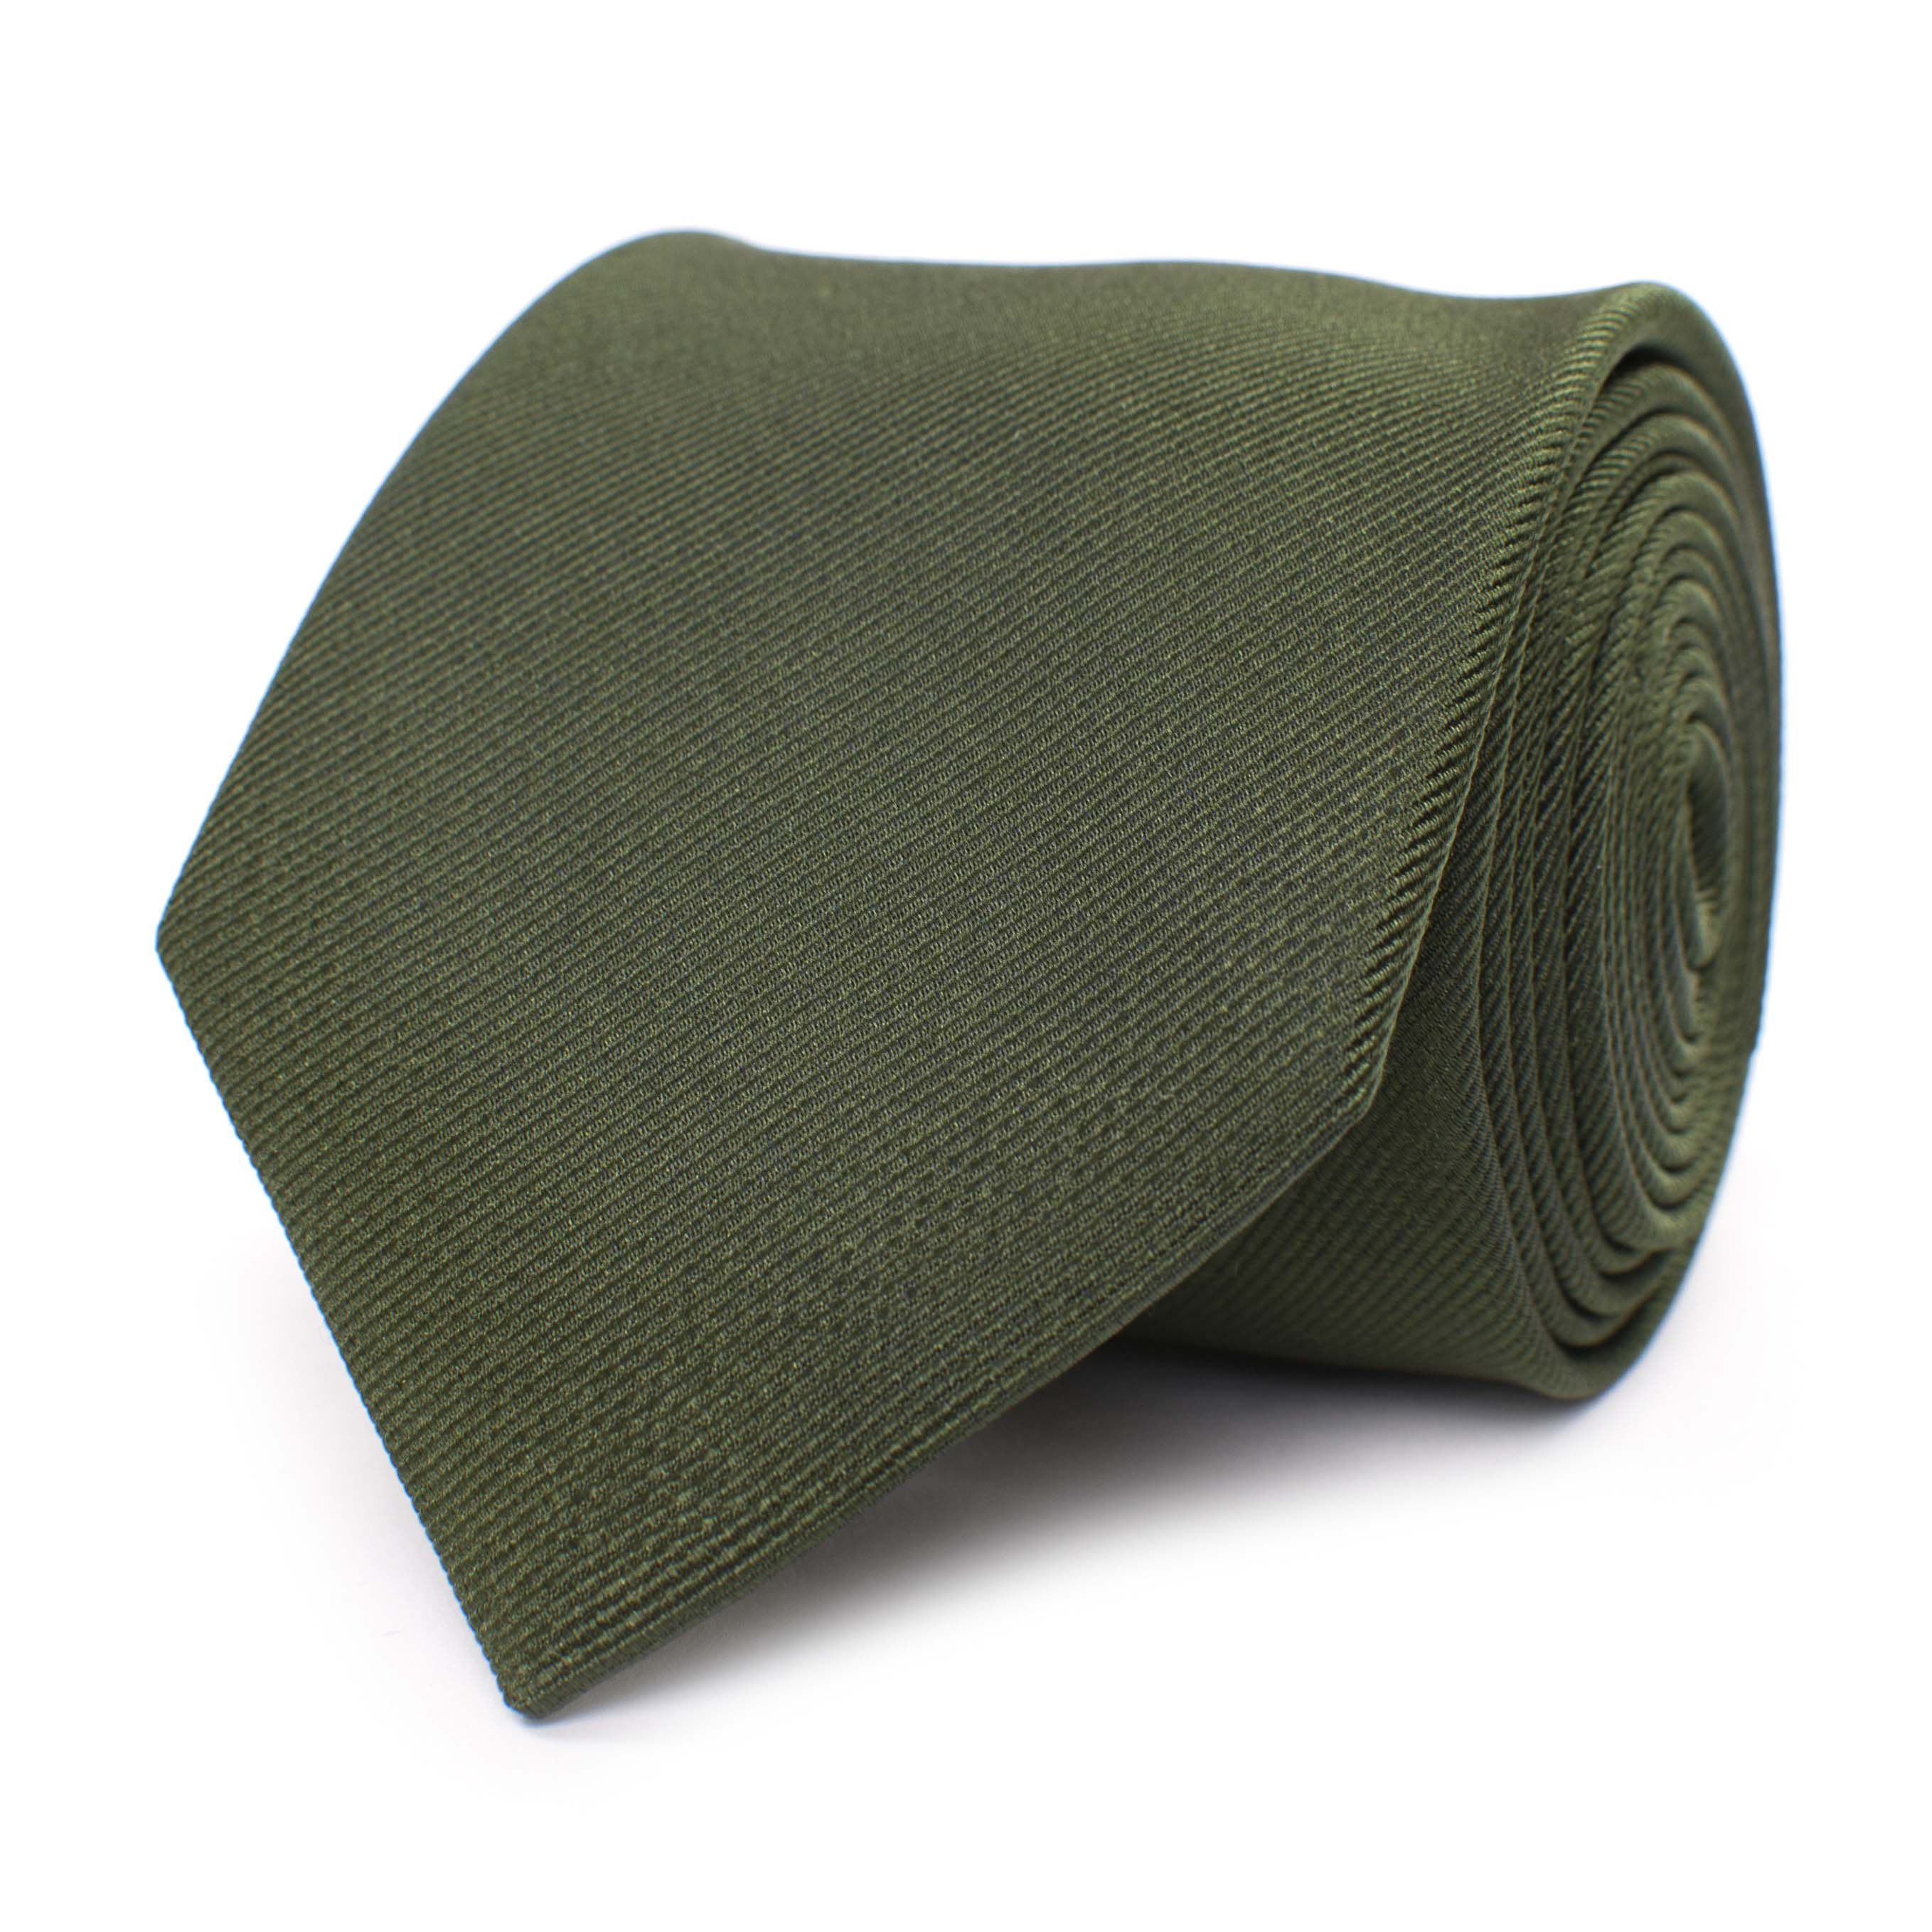 Tie classic ribbed green